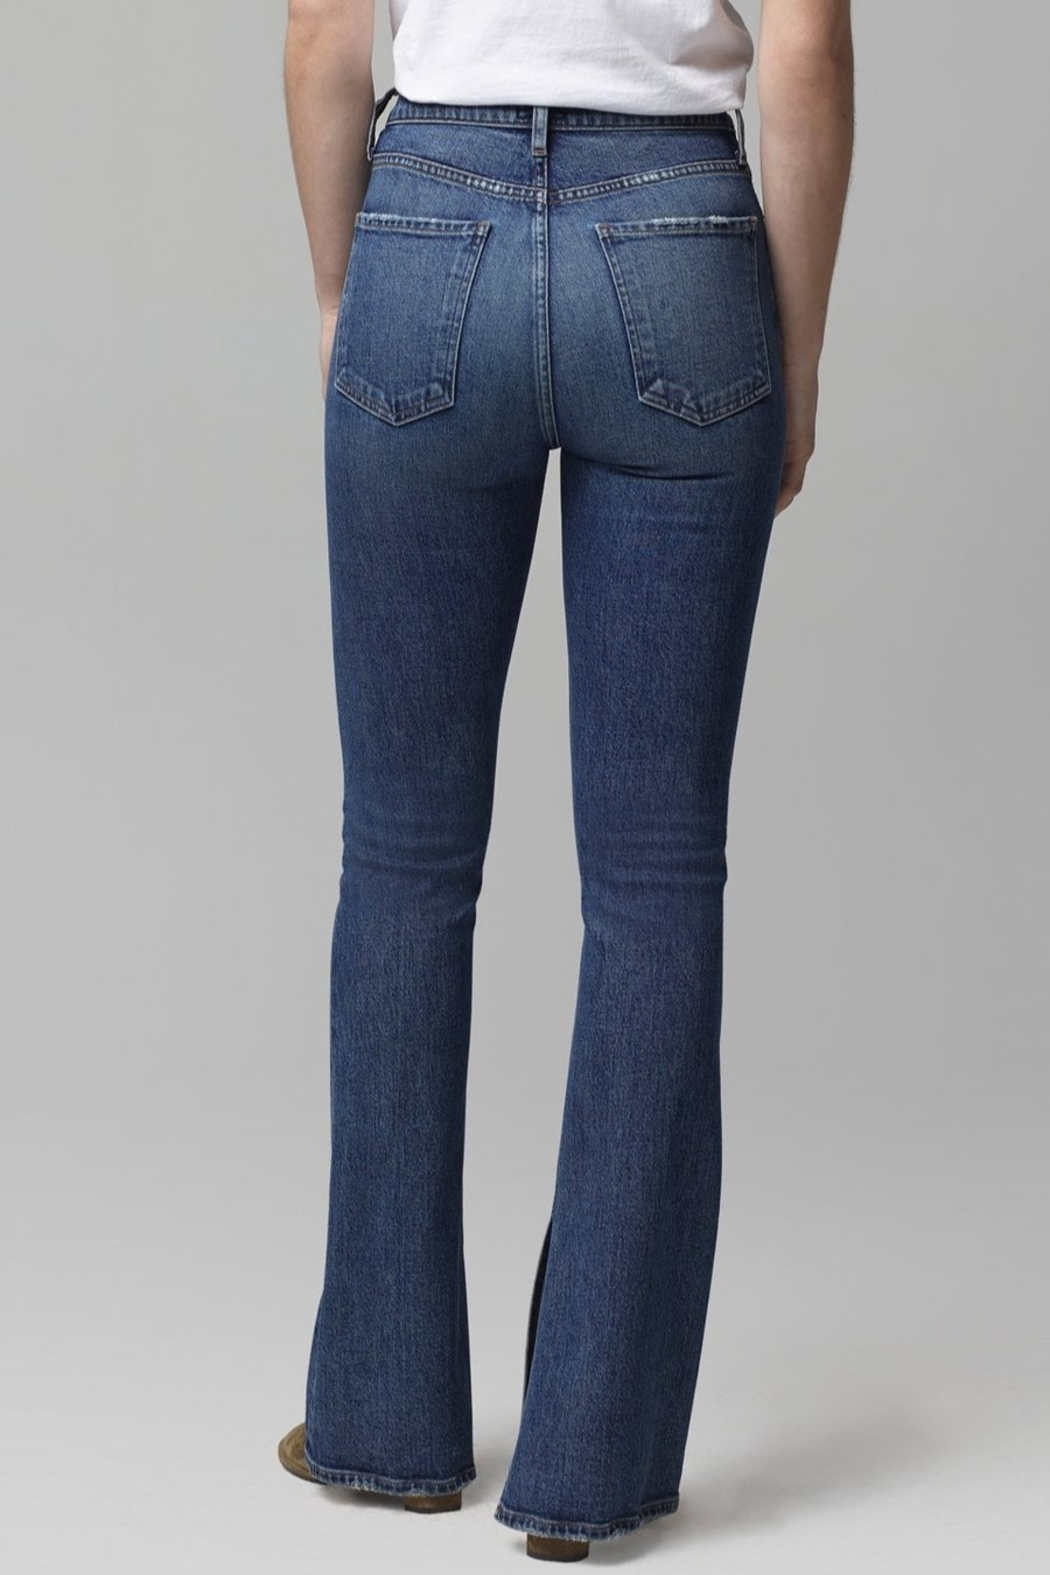 Citizens of Humanity Georgia Flare Jeans in Heist - Side Cropped Image